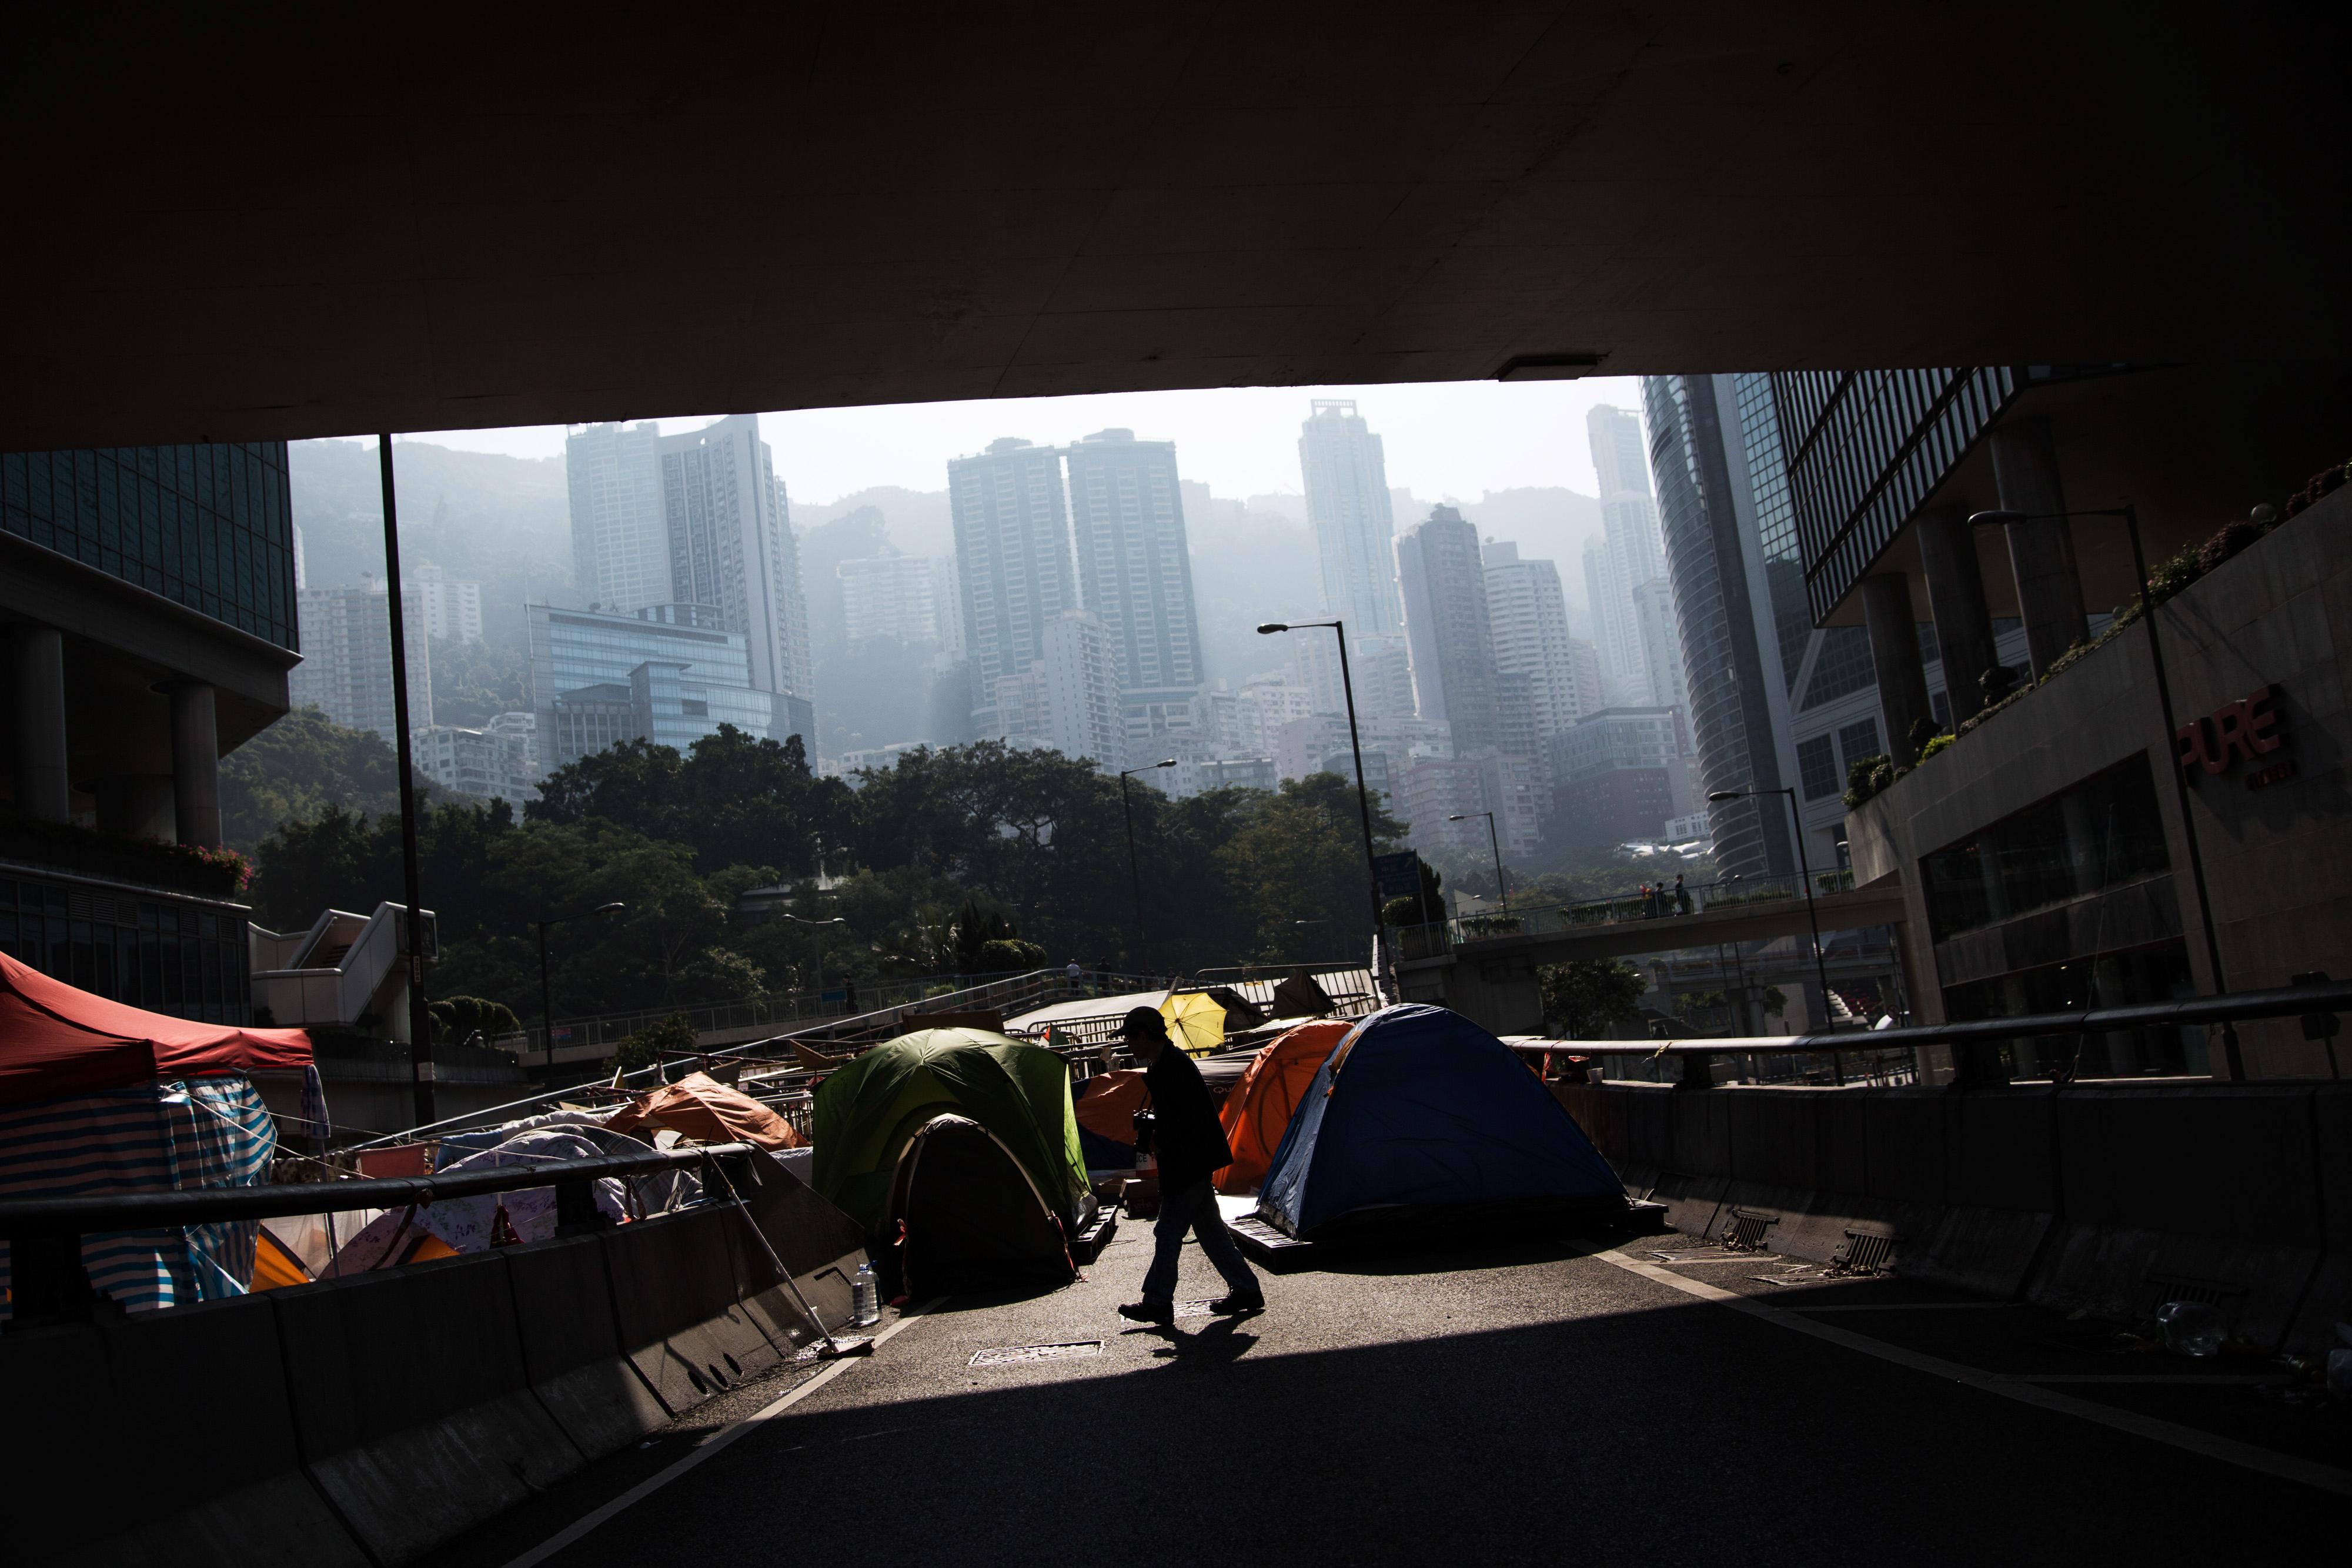 A man is silhouetted walking past tents on a flyover in the Admiralty district of Hong Kong on Dec. 9, 2014. Pro-democracy demonstrators in Hong Kong are bracing for police to clear part of their main protest site in two days following a court order to reopen roads that have been occupied for more than two months